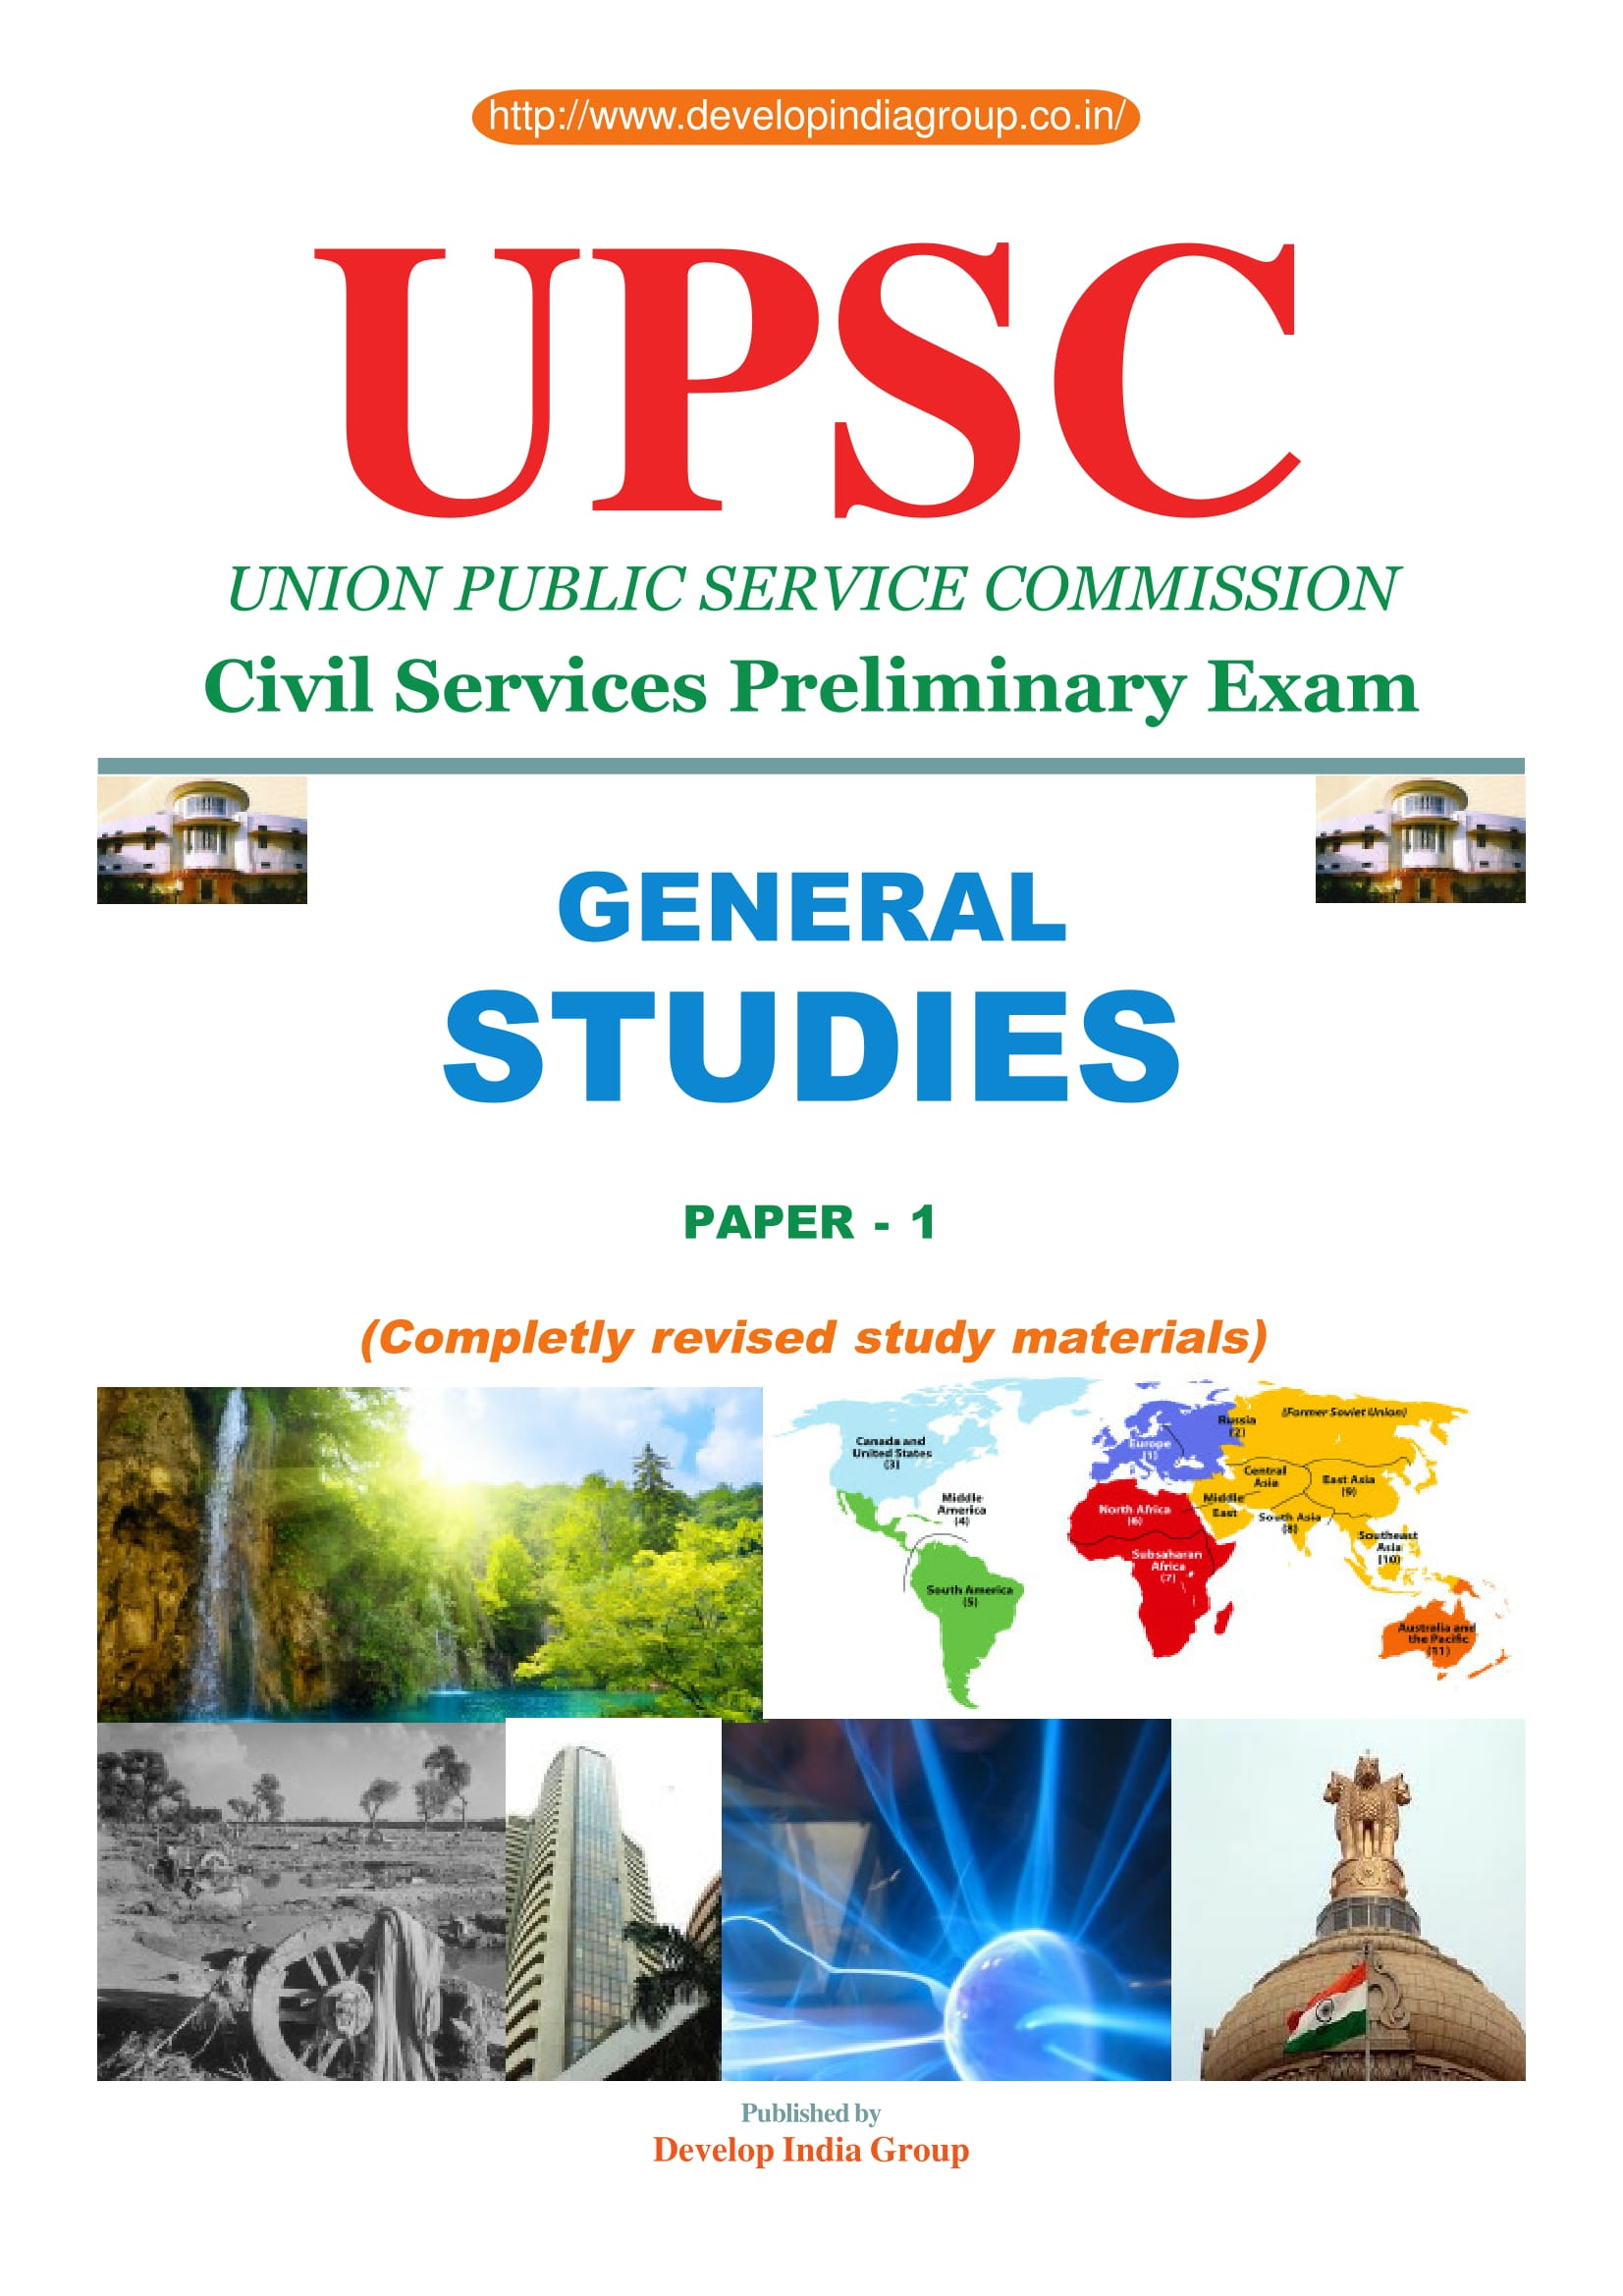 Civil Services Prelims Exam Paper I study notes (English)